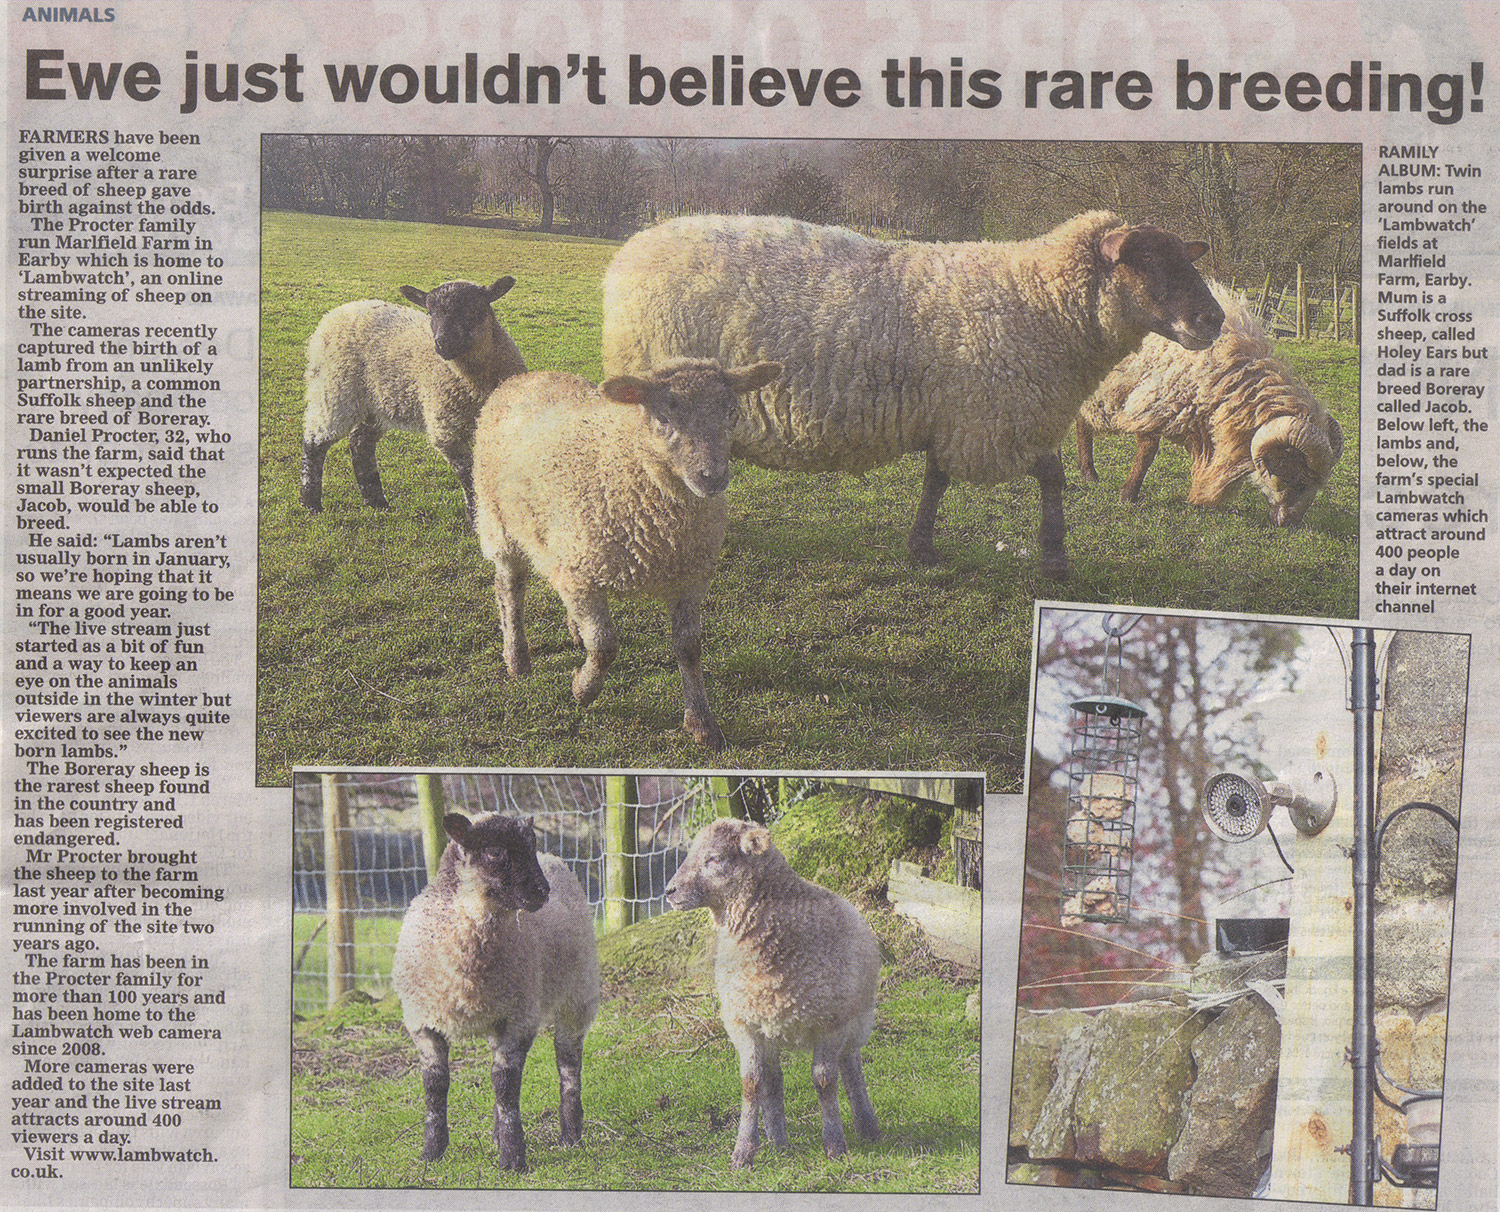 """Ewe wouldn't believe this rare breeding!"""